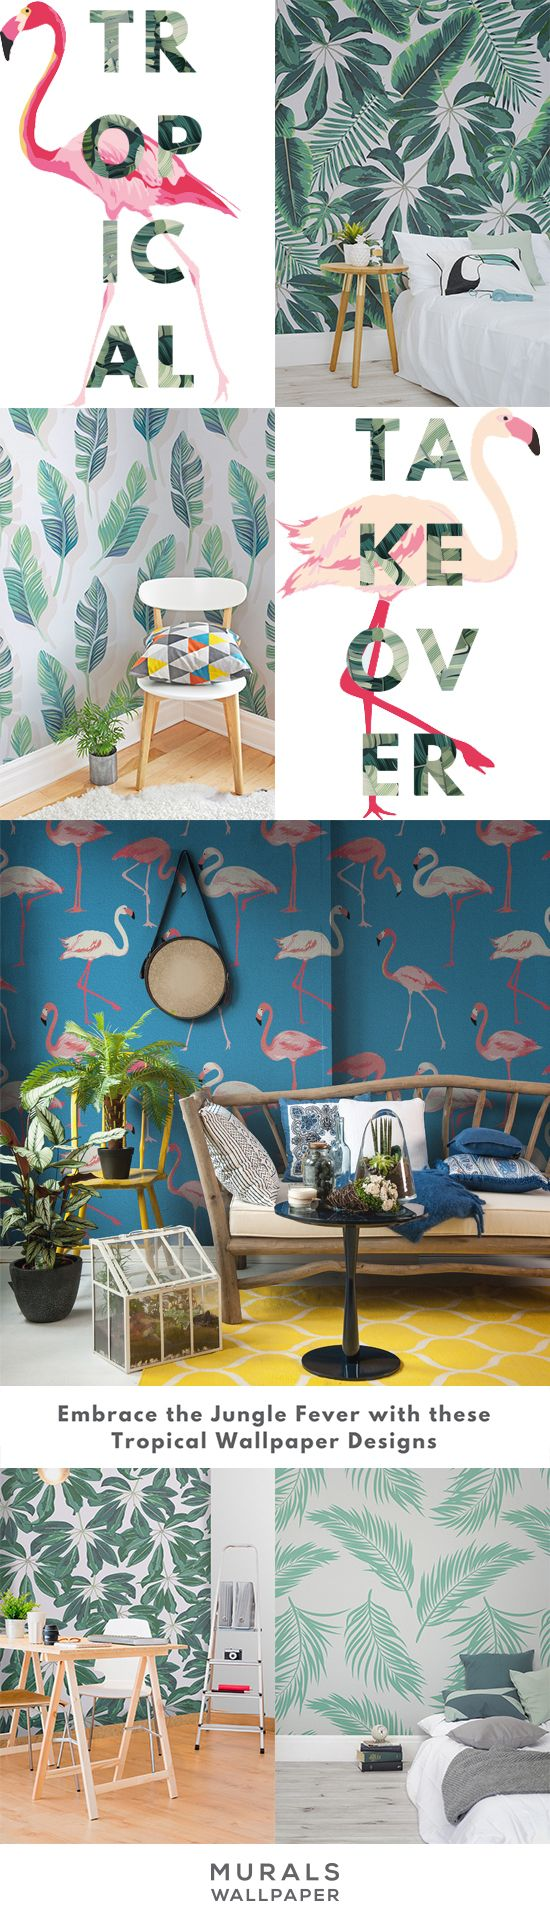 Go bold or go home with these beautiful tropical wallpaper designs. From vibrant leafy prints to exuberant flamingos, our range of tropical wall murals will get your interiors ready for the summer!                                                                                                                                                                                 More